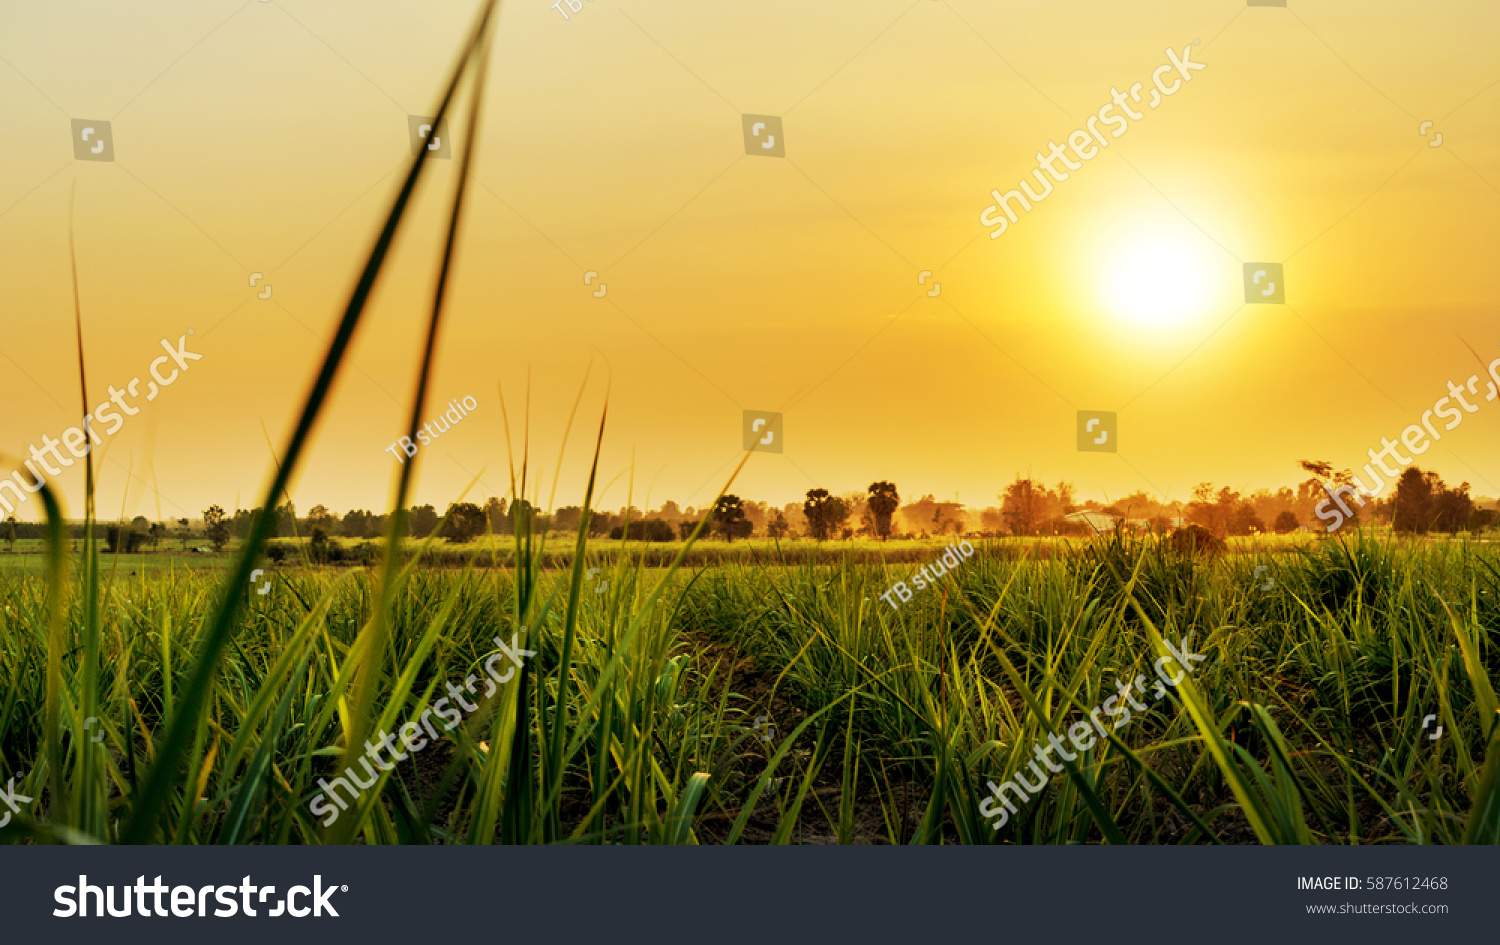 Sunset over sugar cane field #587612468